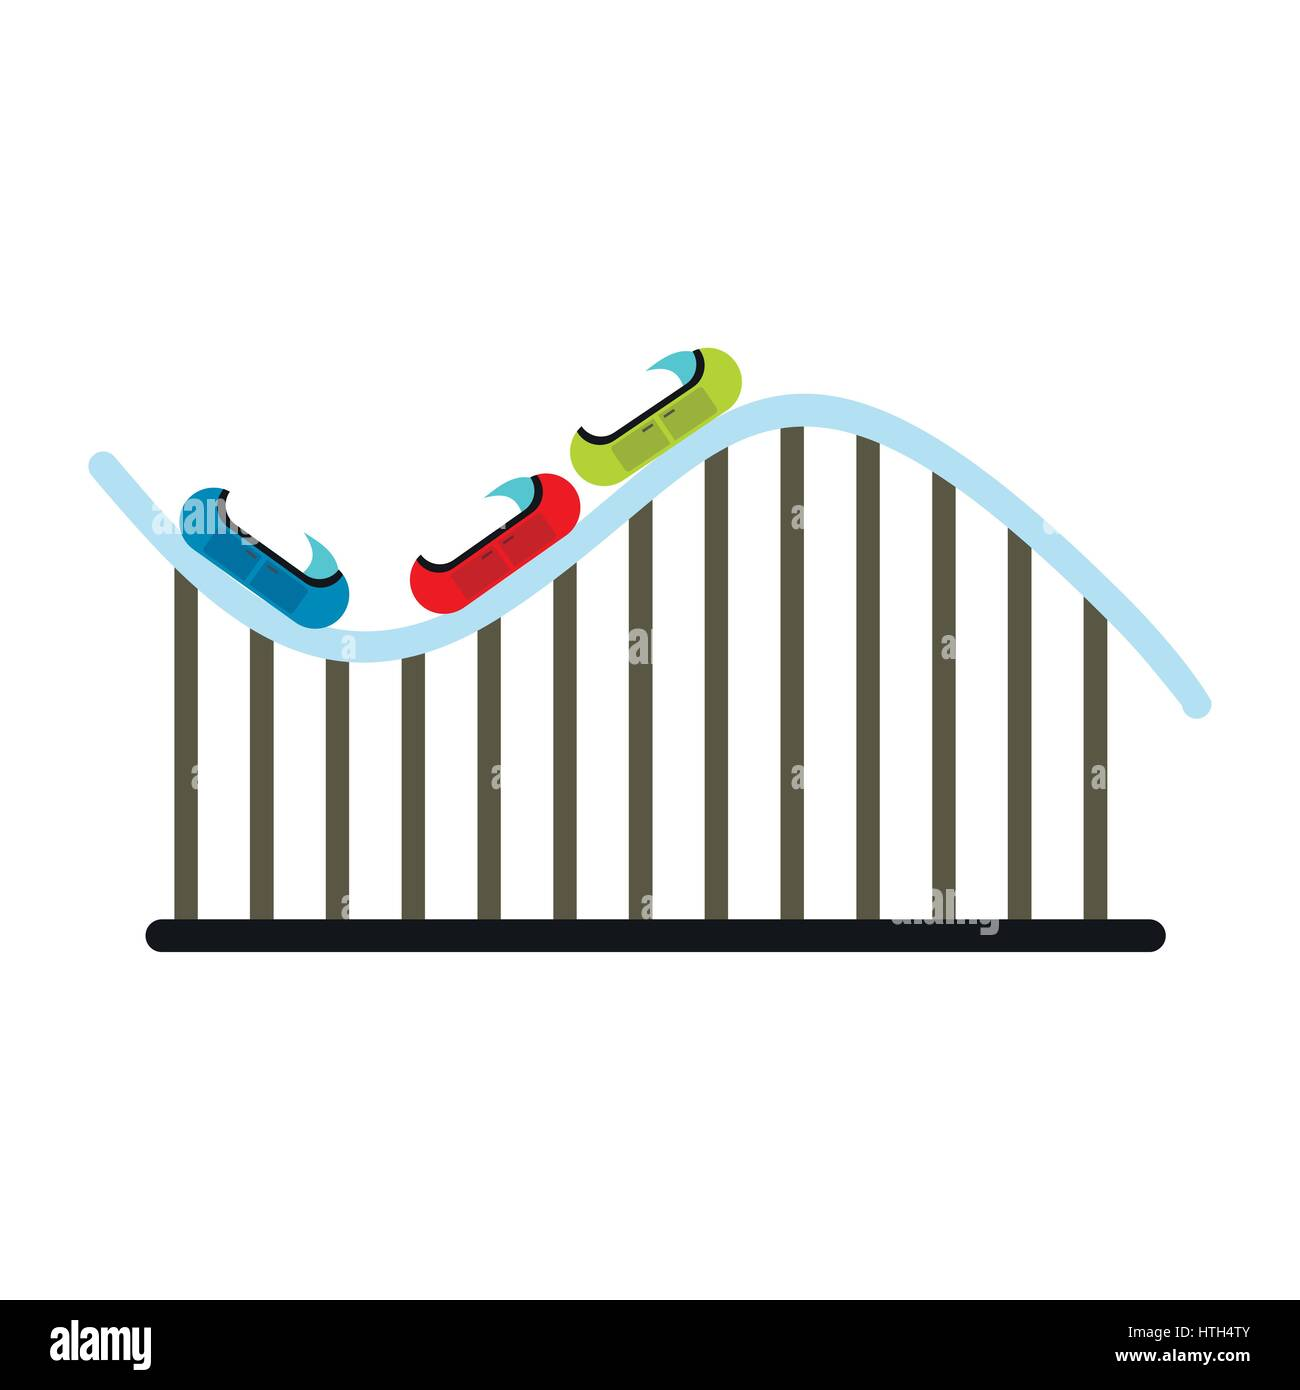 Roller coaster icon - Stock Vector